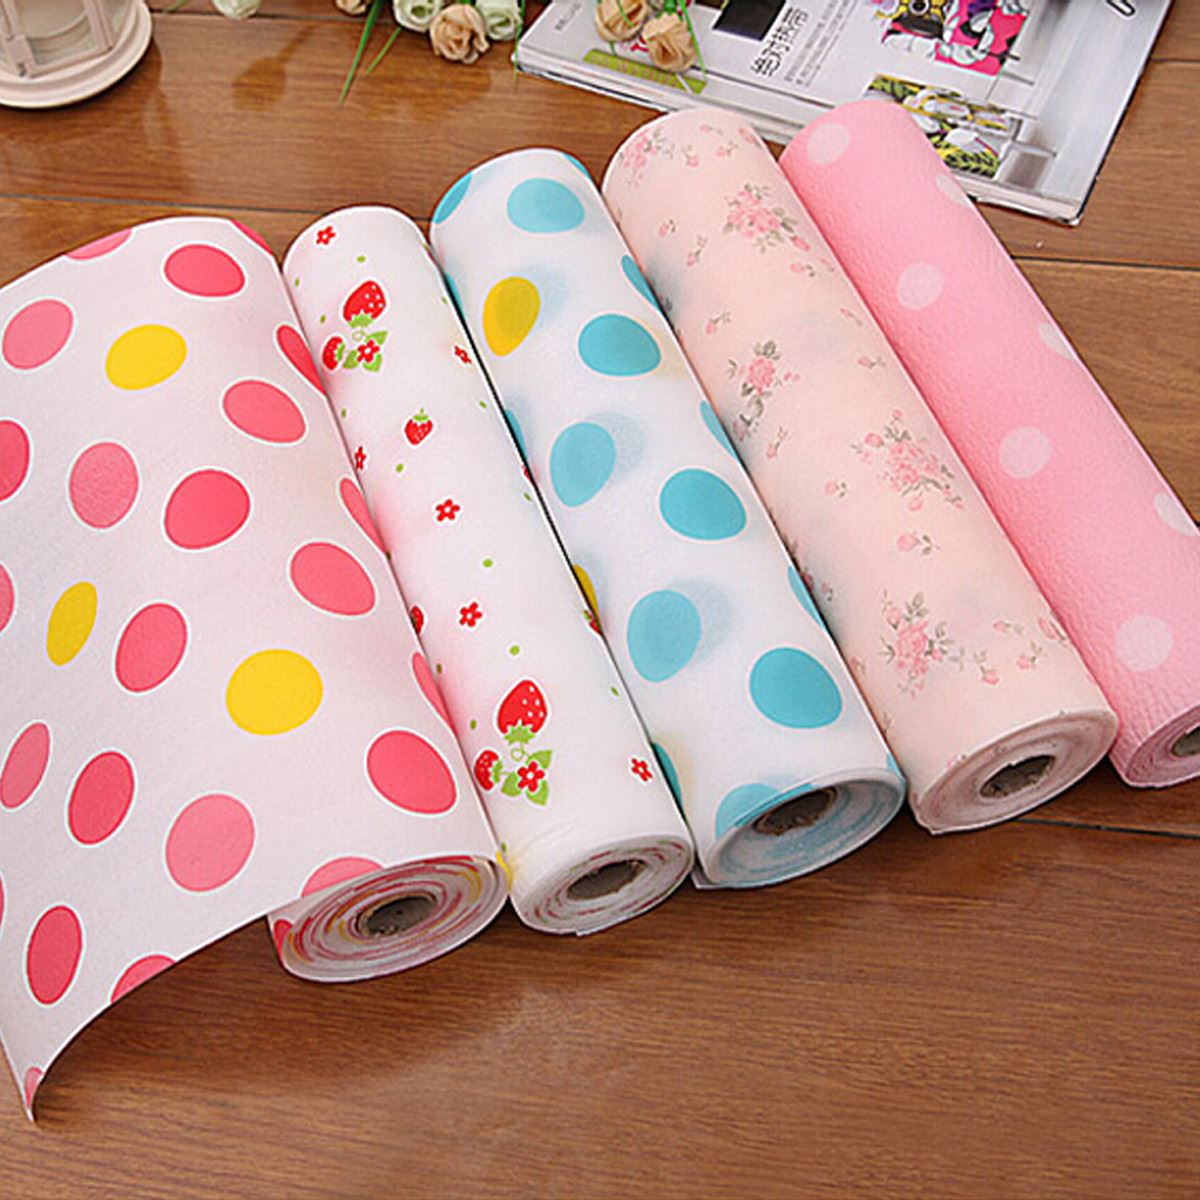 Uncategorized Where To Buy Contact Paper aliexpress com buy dot contact paper kids drawer liner decor mat kitchen decorative placemat desk shelf pad 2016 new color fro